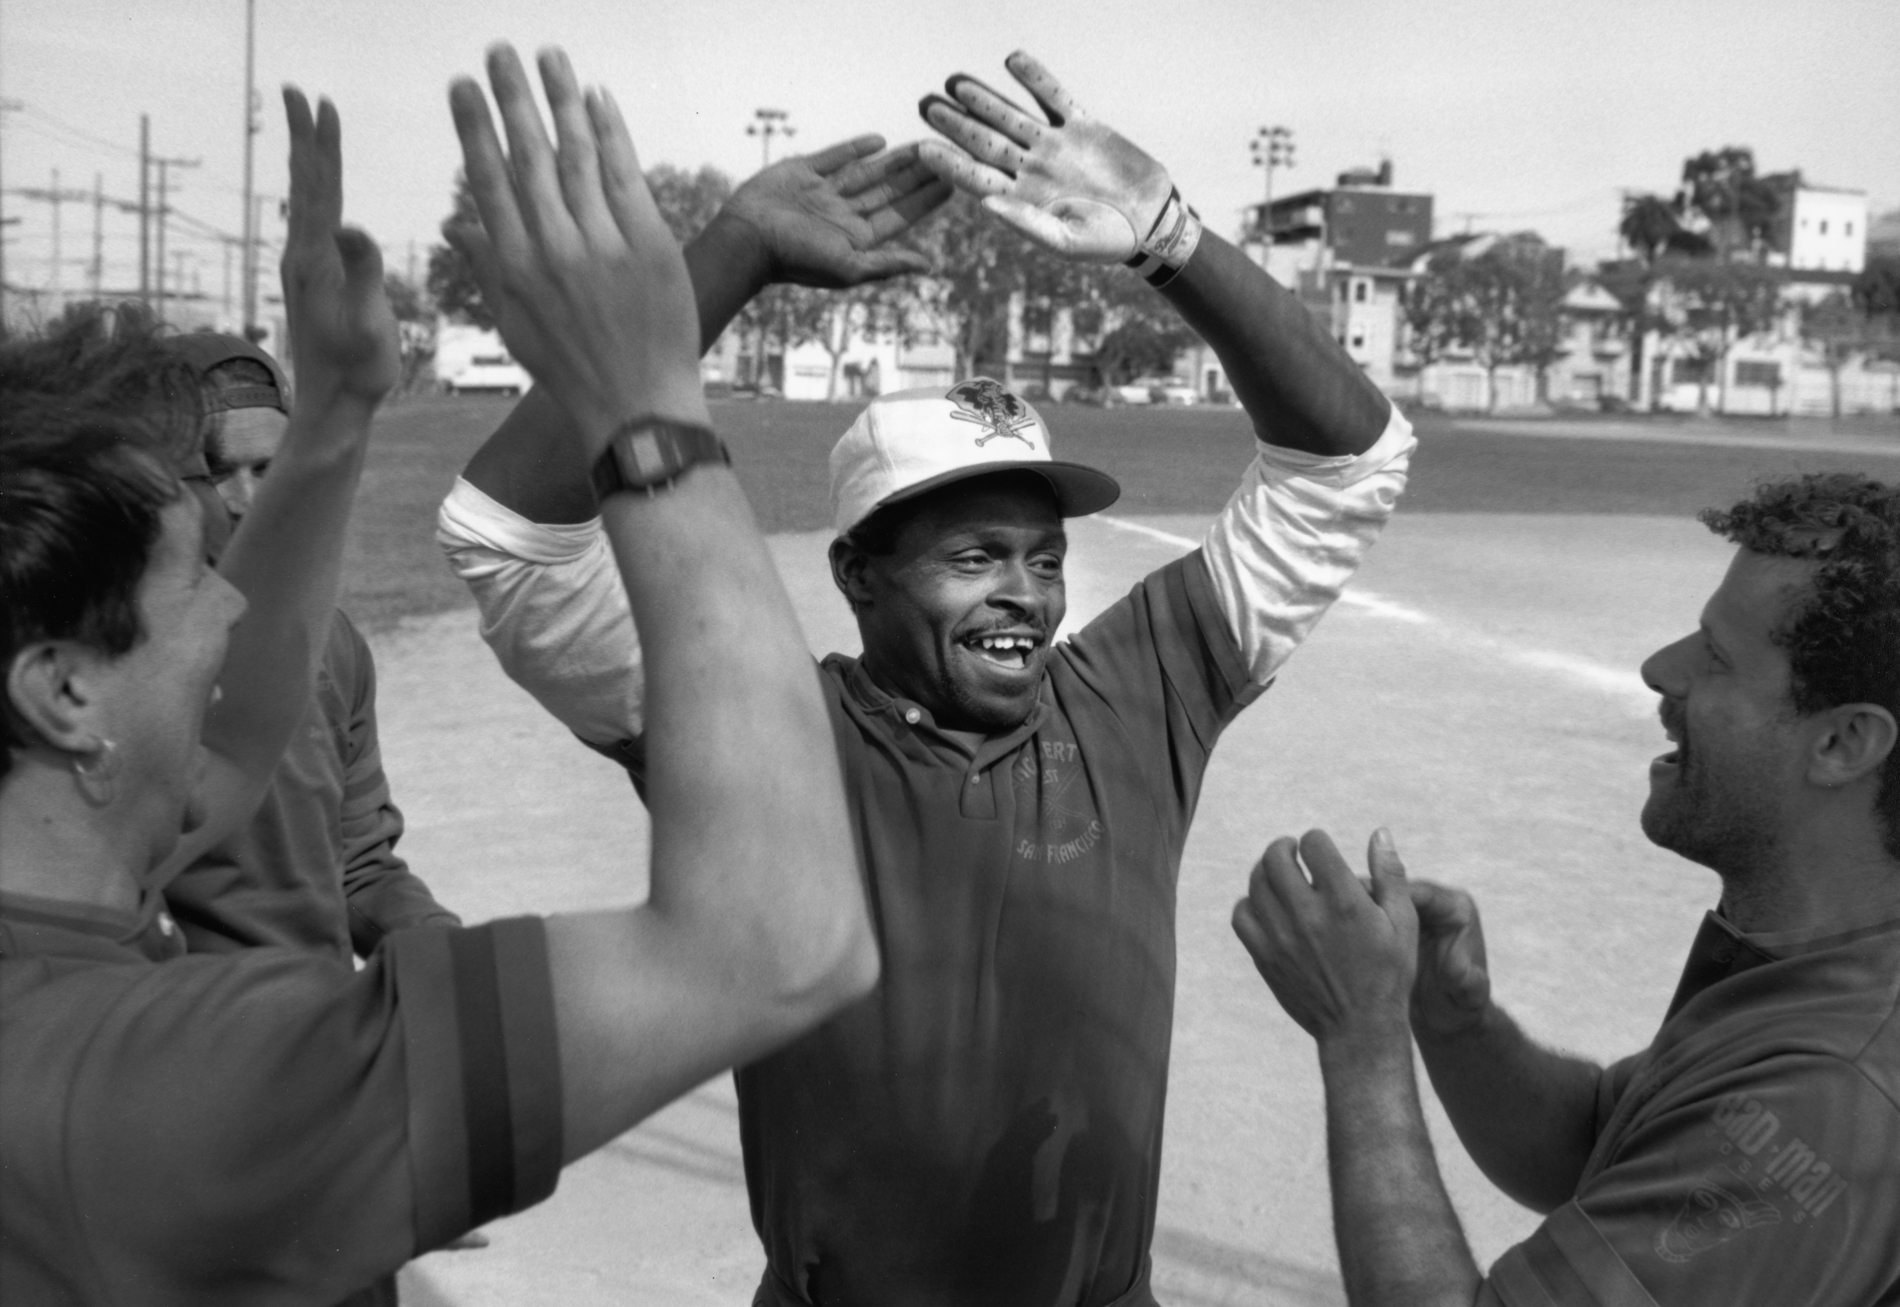 By 1993Glenn Burke was still the only professional majoar league baseball player to have come out.He died in 1995 at the age of 42.